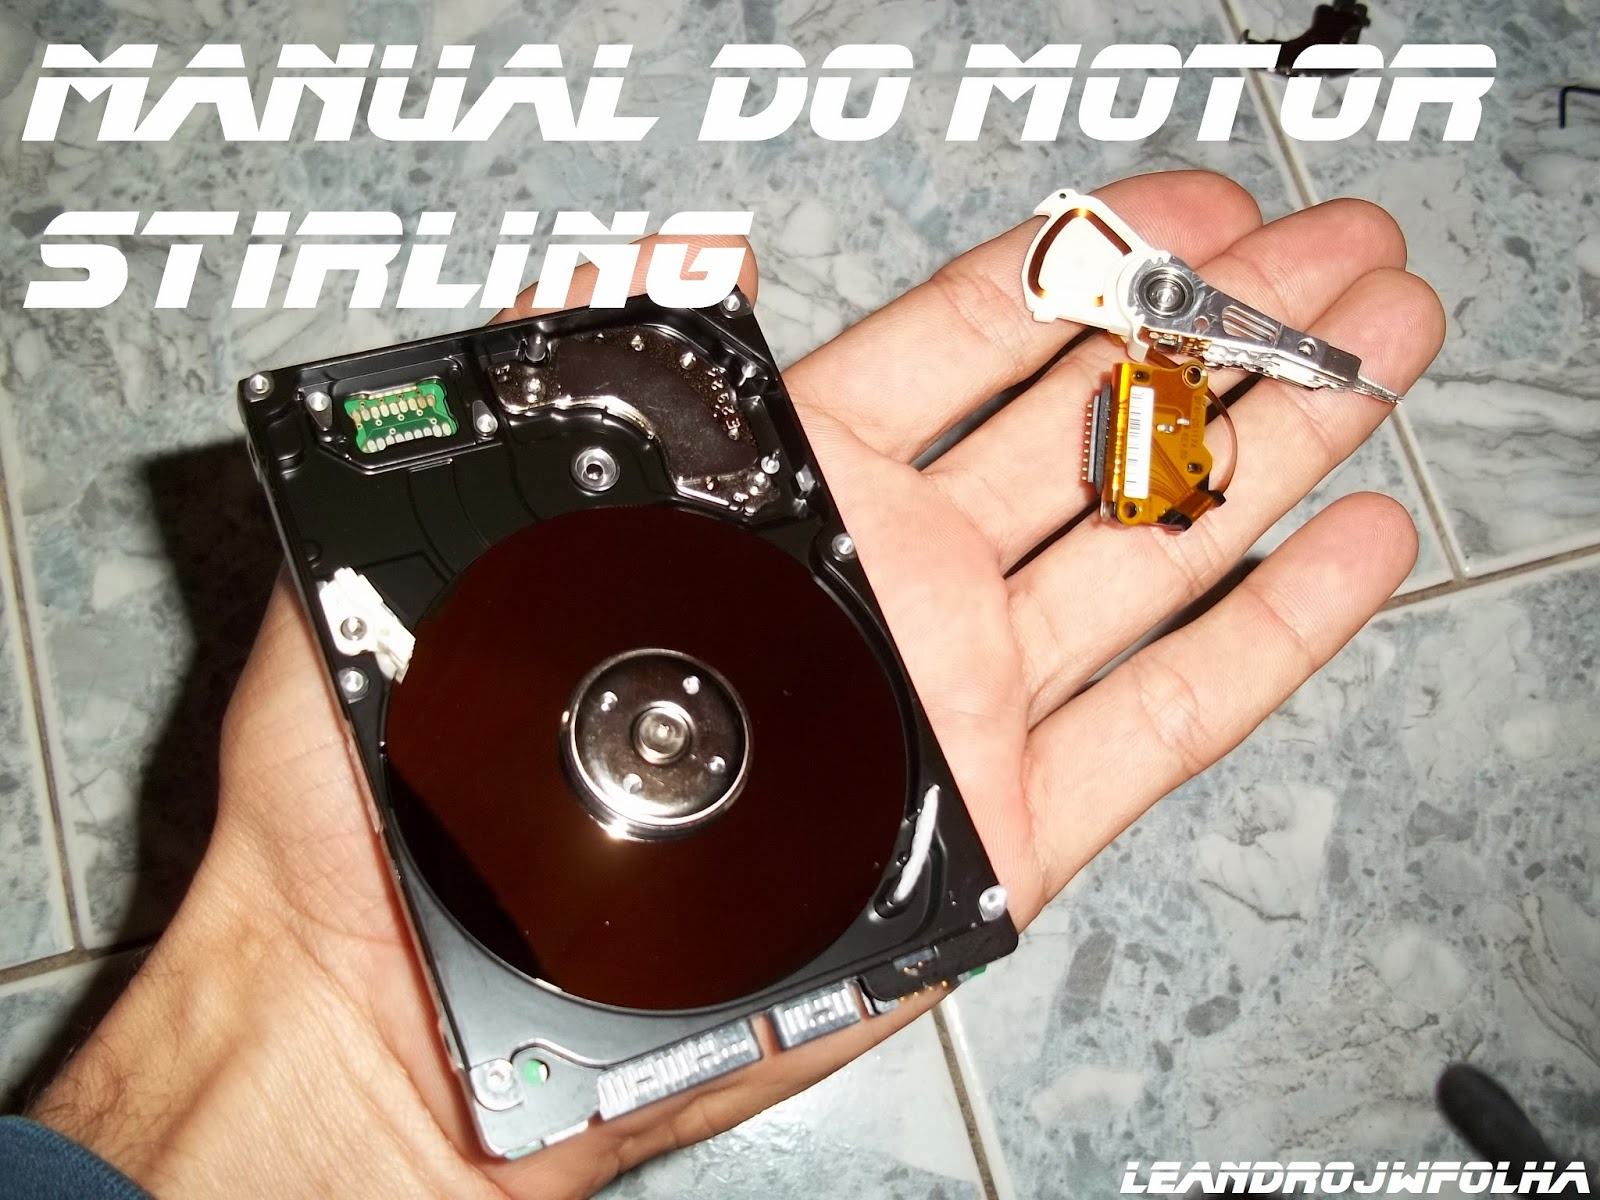 Manual do motor Stirling, HD de computador, para montagem biela do motor